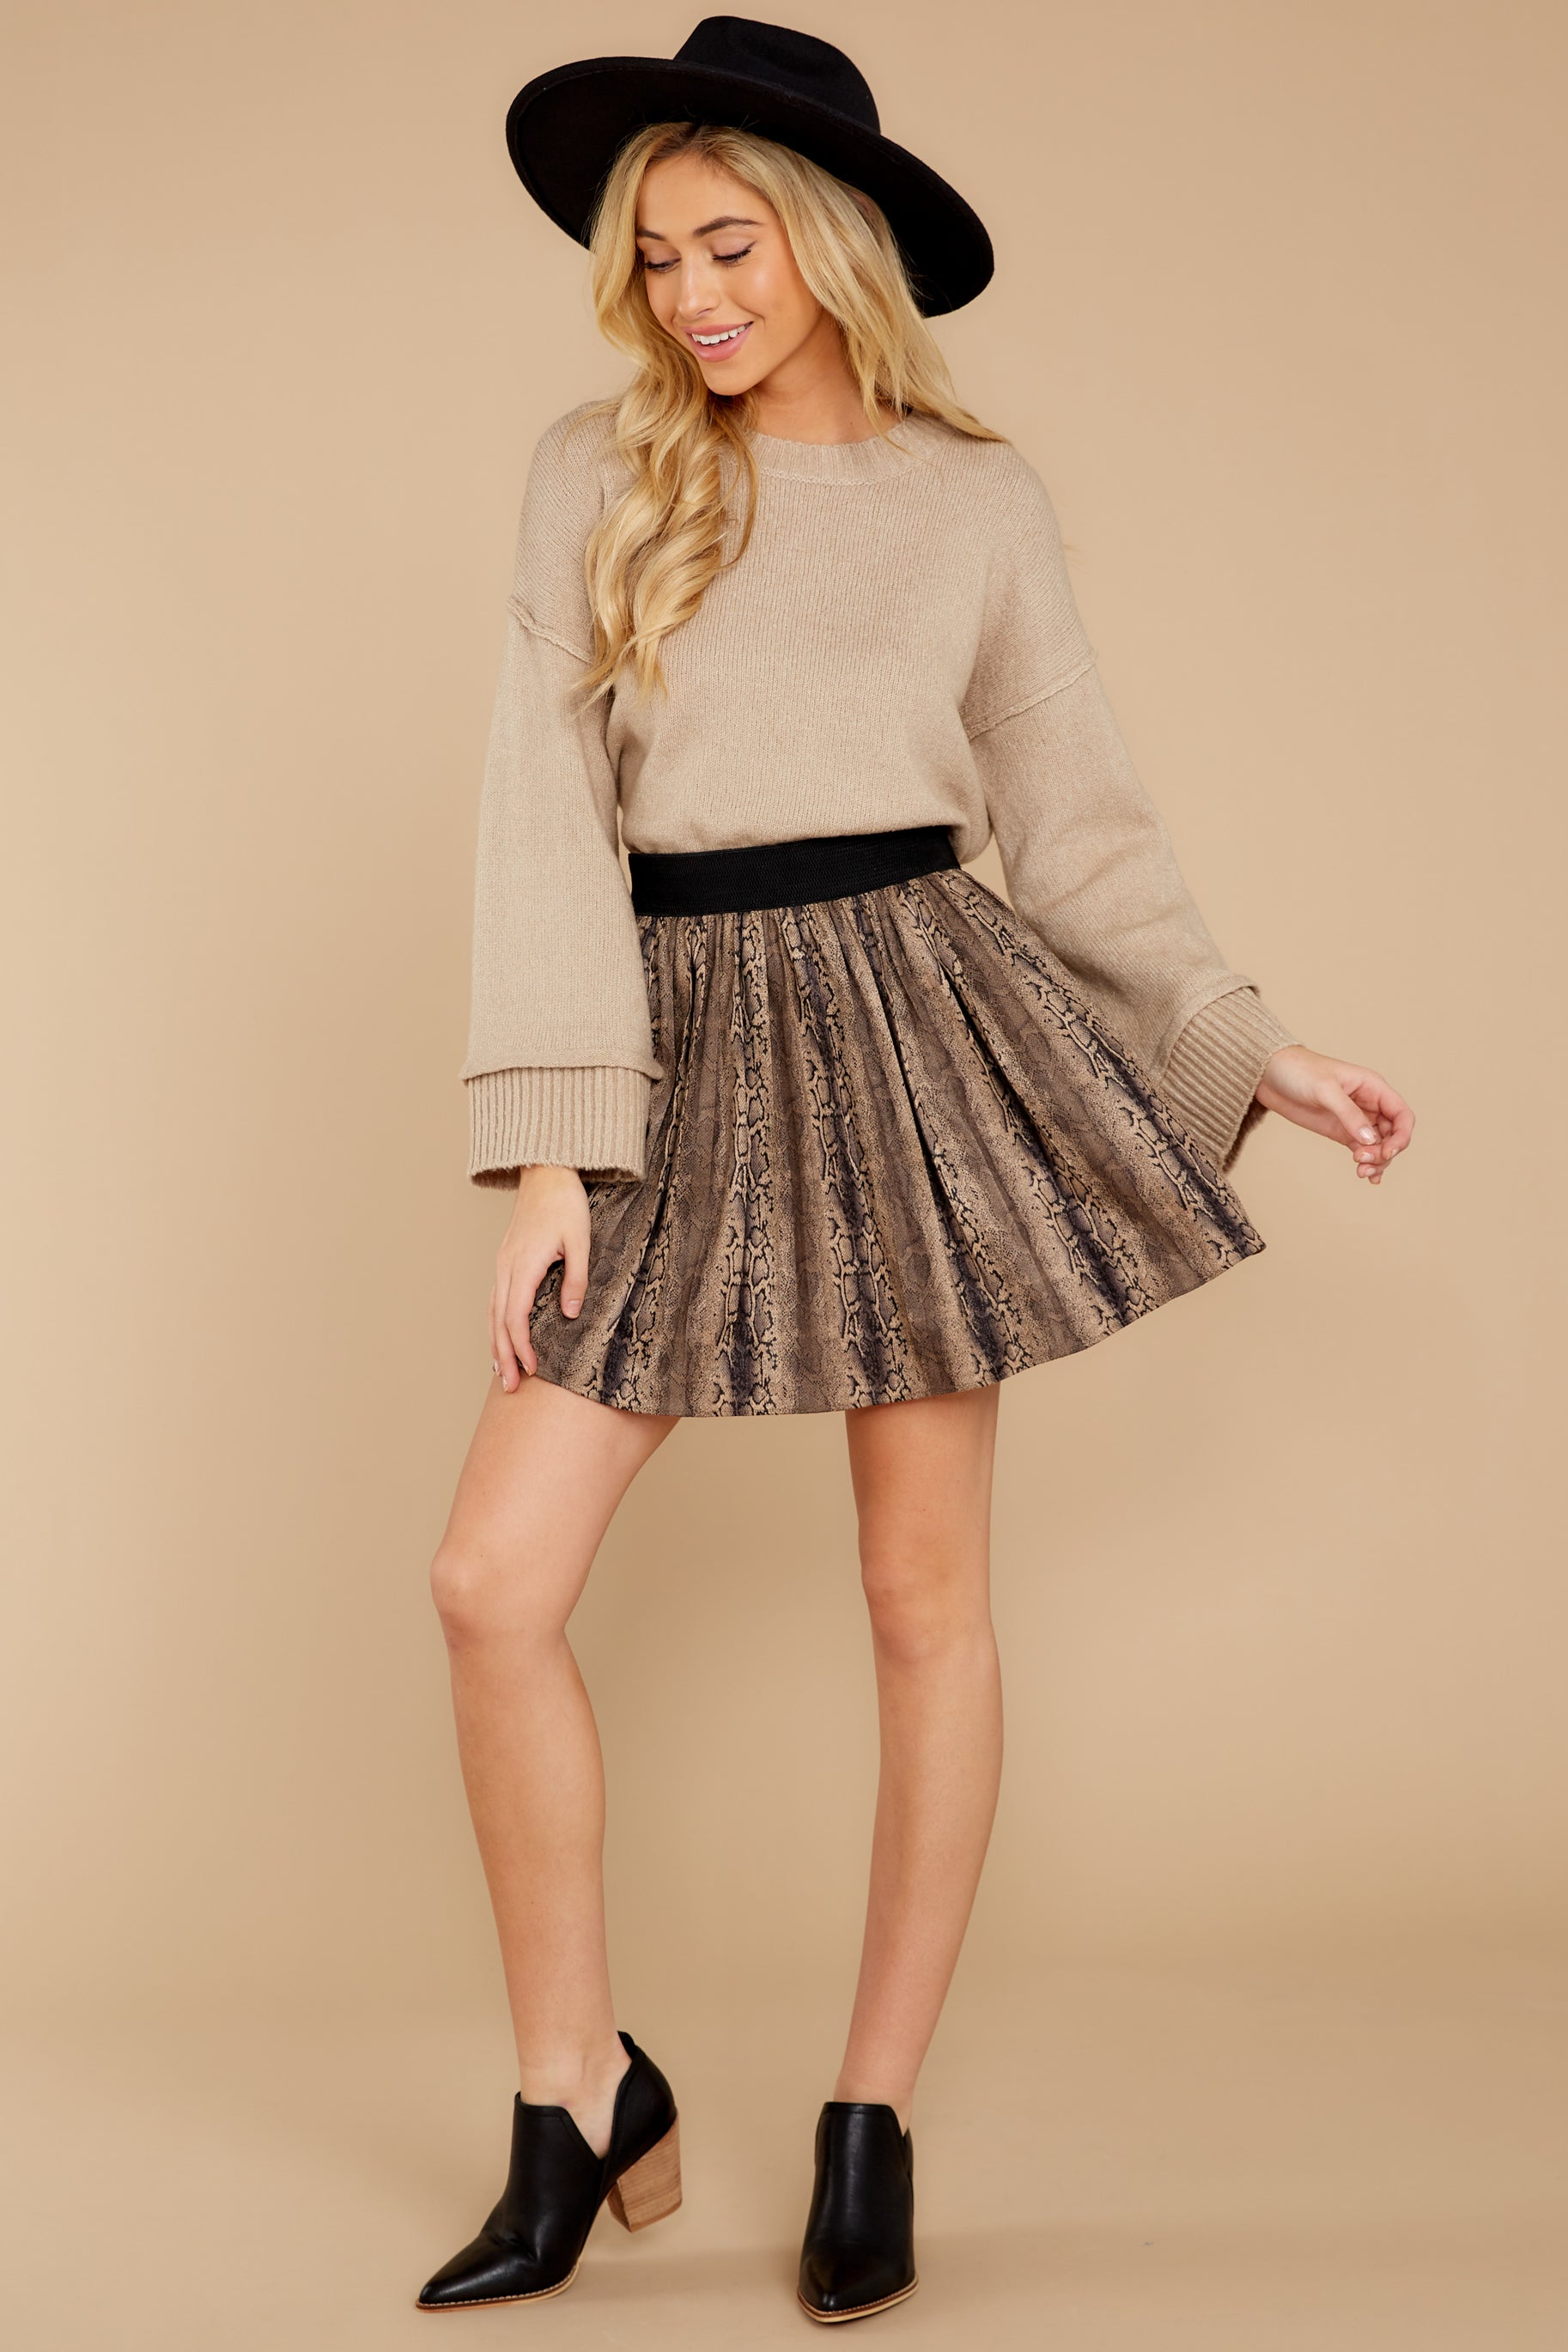 9 Woman About Town Warm Taupe Sweater at reddressboutique.com